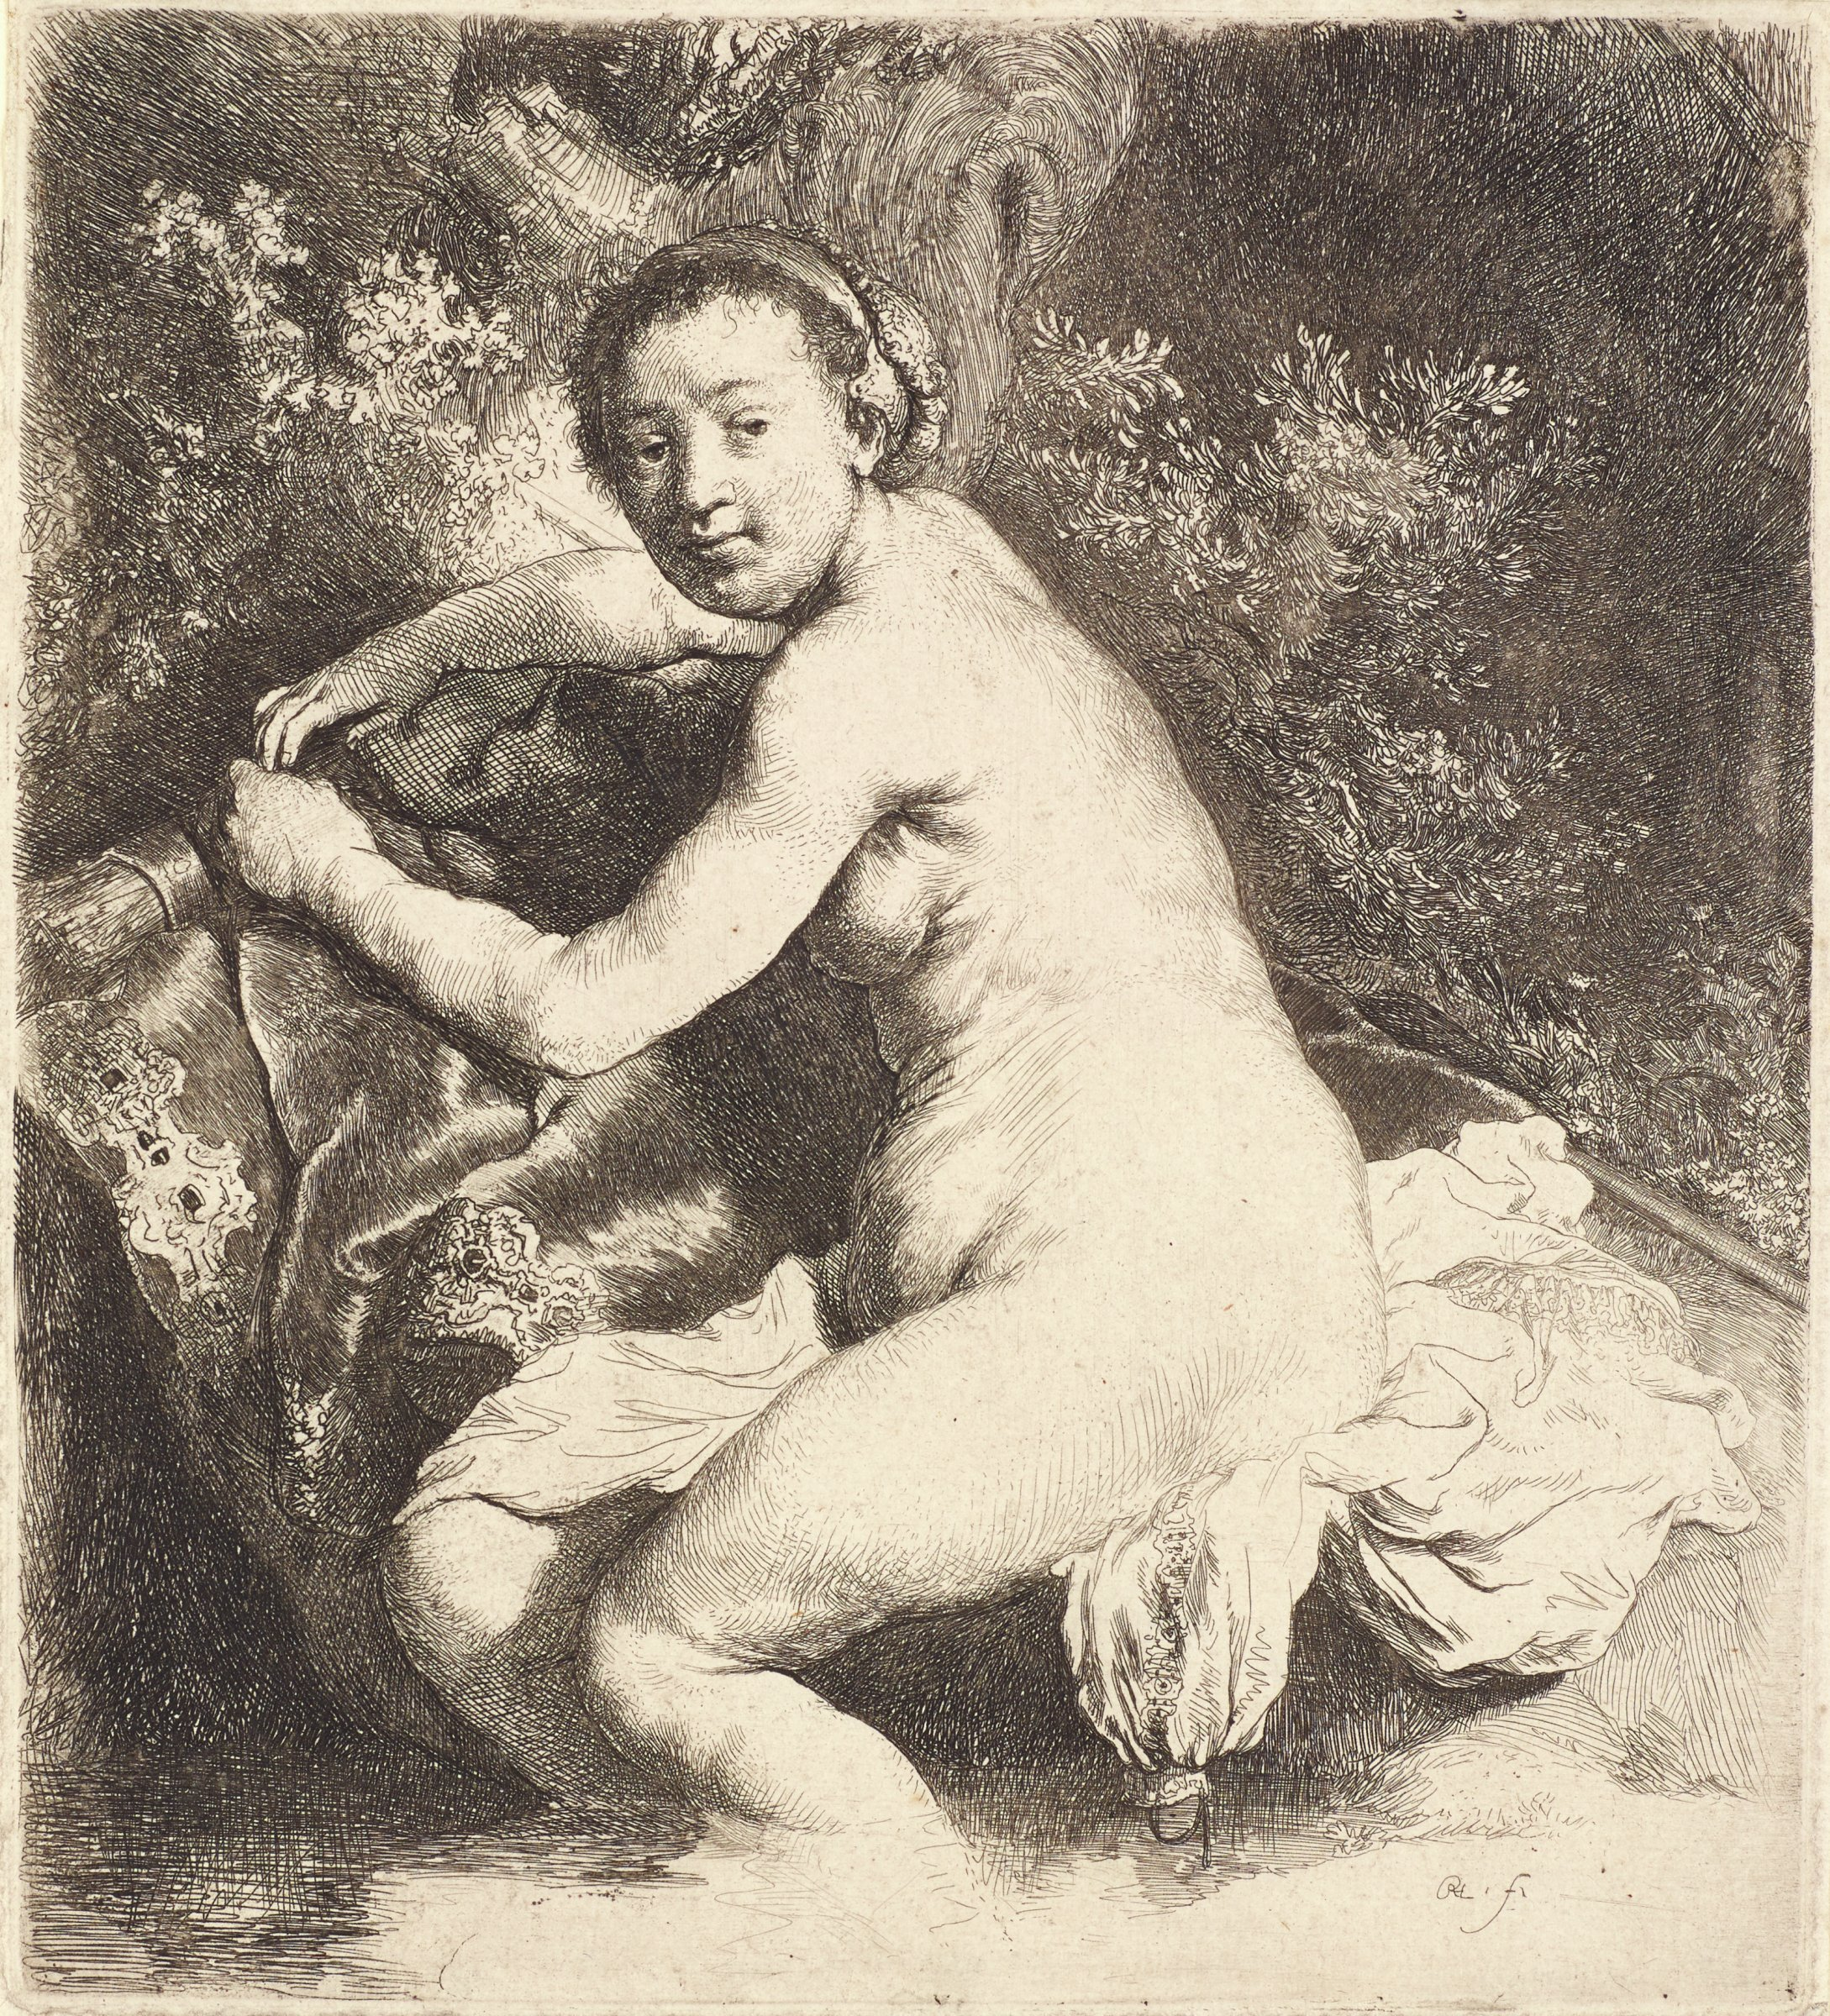 A nude female sits on the bank of a body of water. She leans slightly on a rock and turns her head to the viewer. A quiver of arrows is seen on the left.